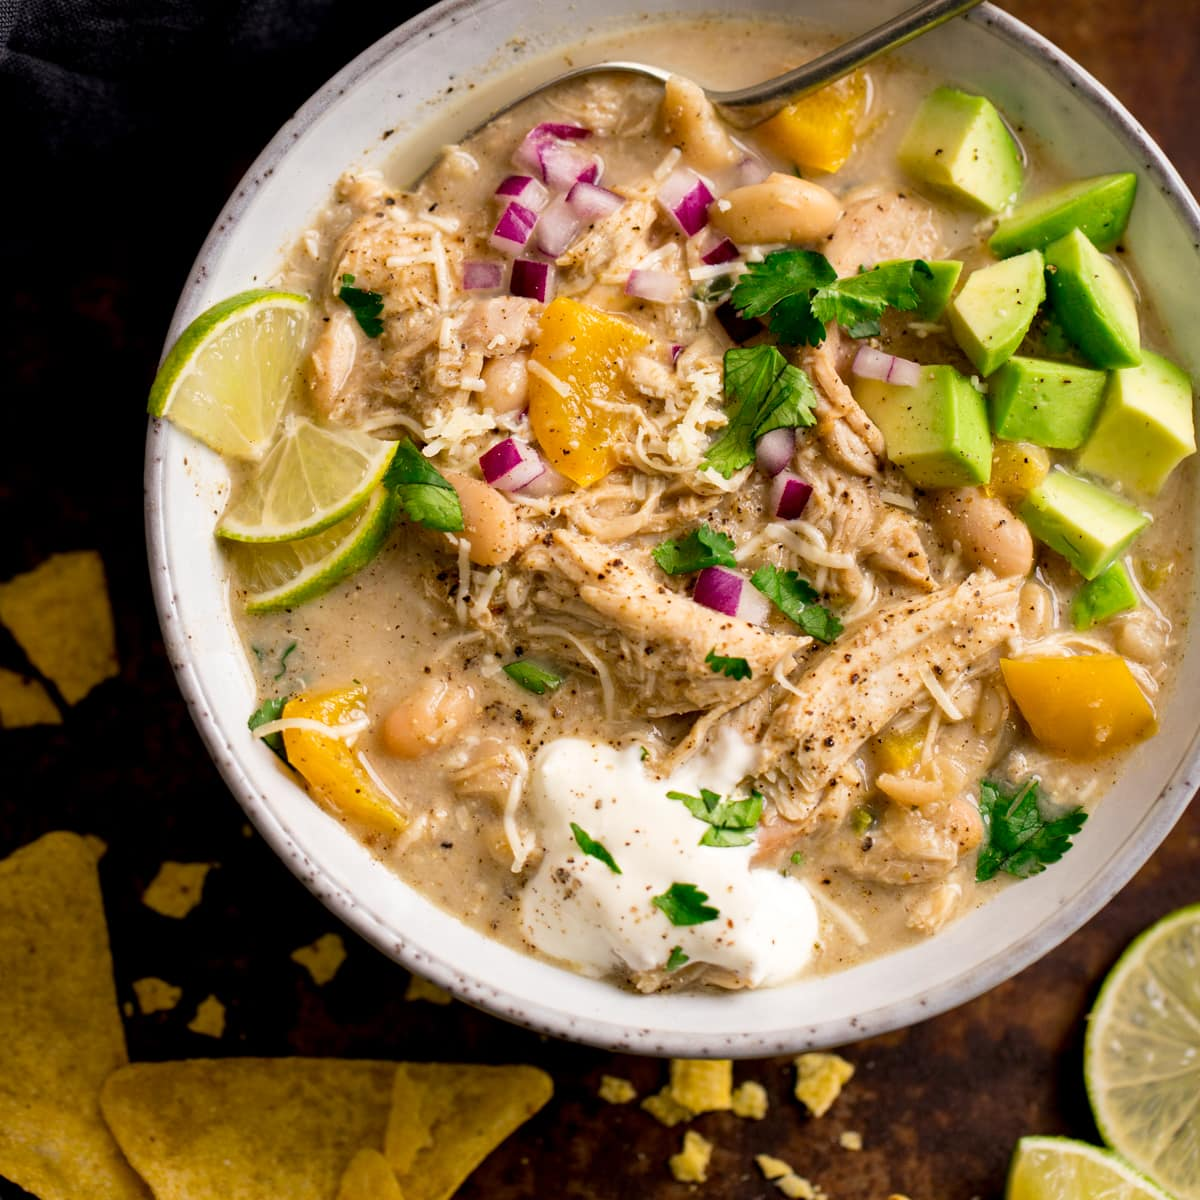 white chilli chicken con carne in a white bowl topped with lime wedges, avocado chunks and red onion. Tortilla crisps next to the bowl.